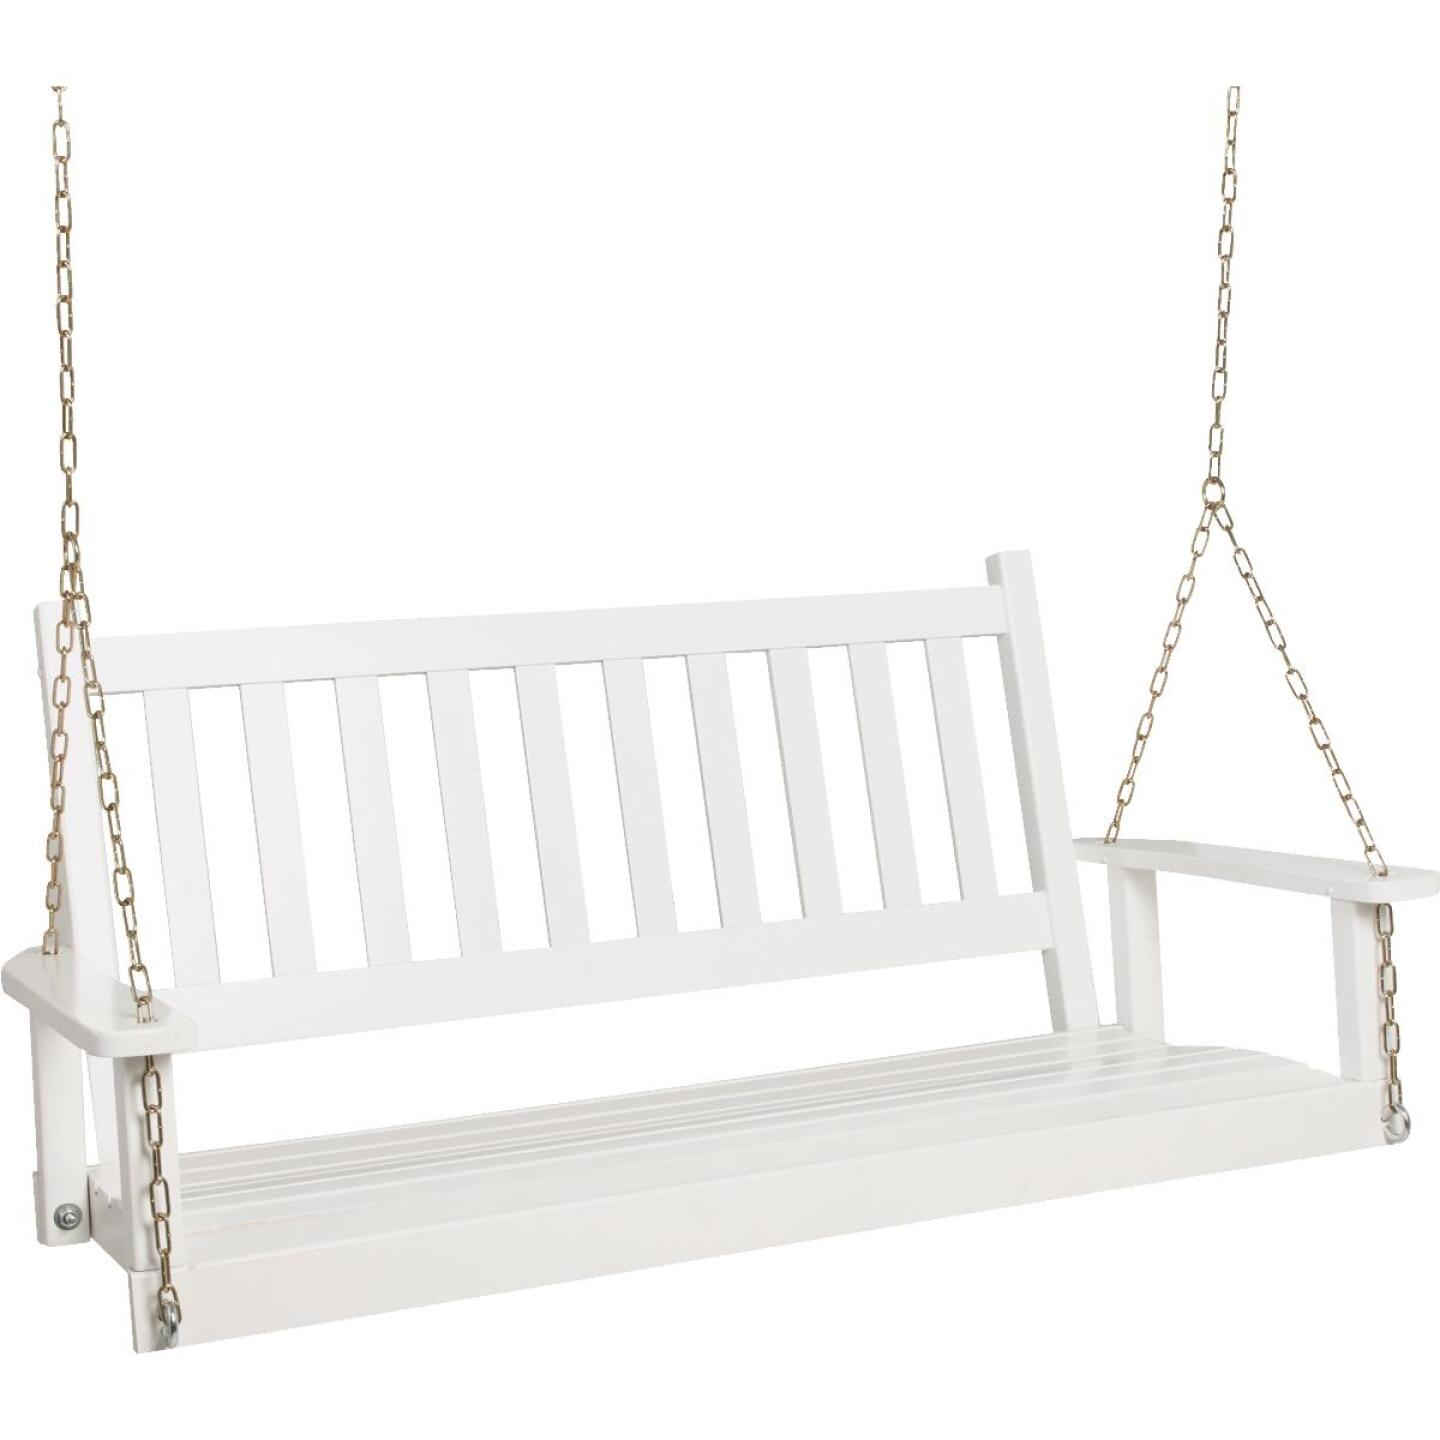 Jack Post Knollwood Collection 54 In. W. x 24-1/2 In. H. x 19-1/2 In. D White Wood Porch Swing Image 1